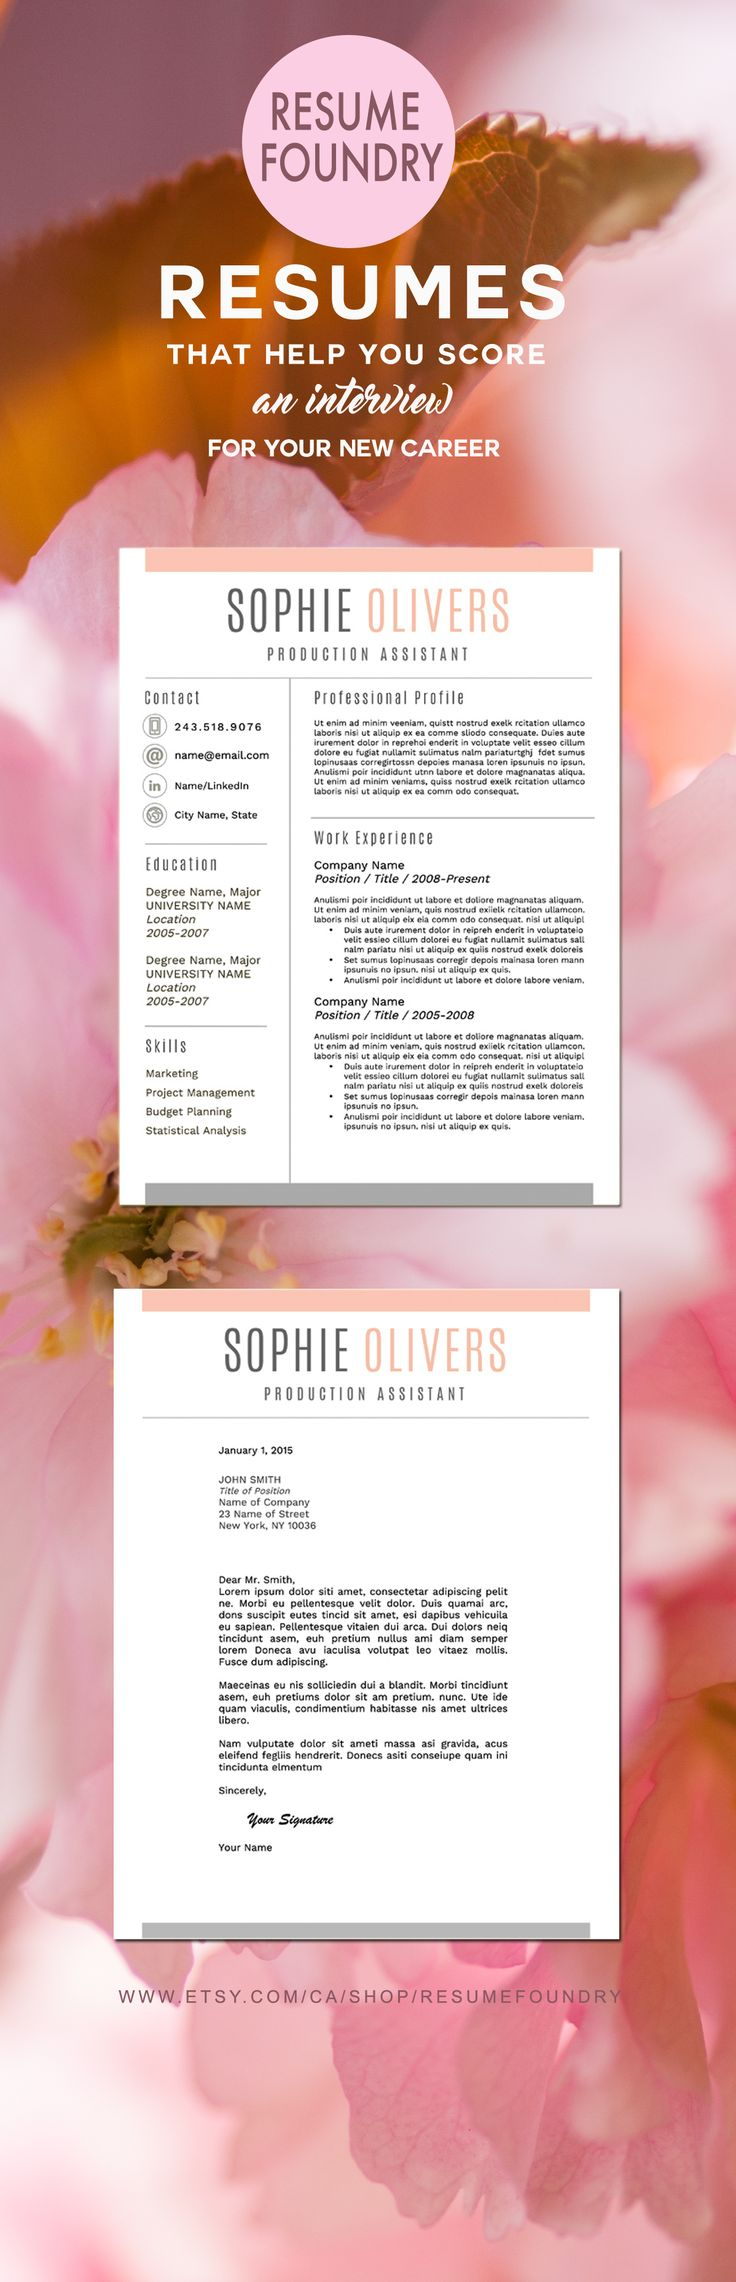 Best Two Page Cv Template  Word Images On   Resume